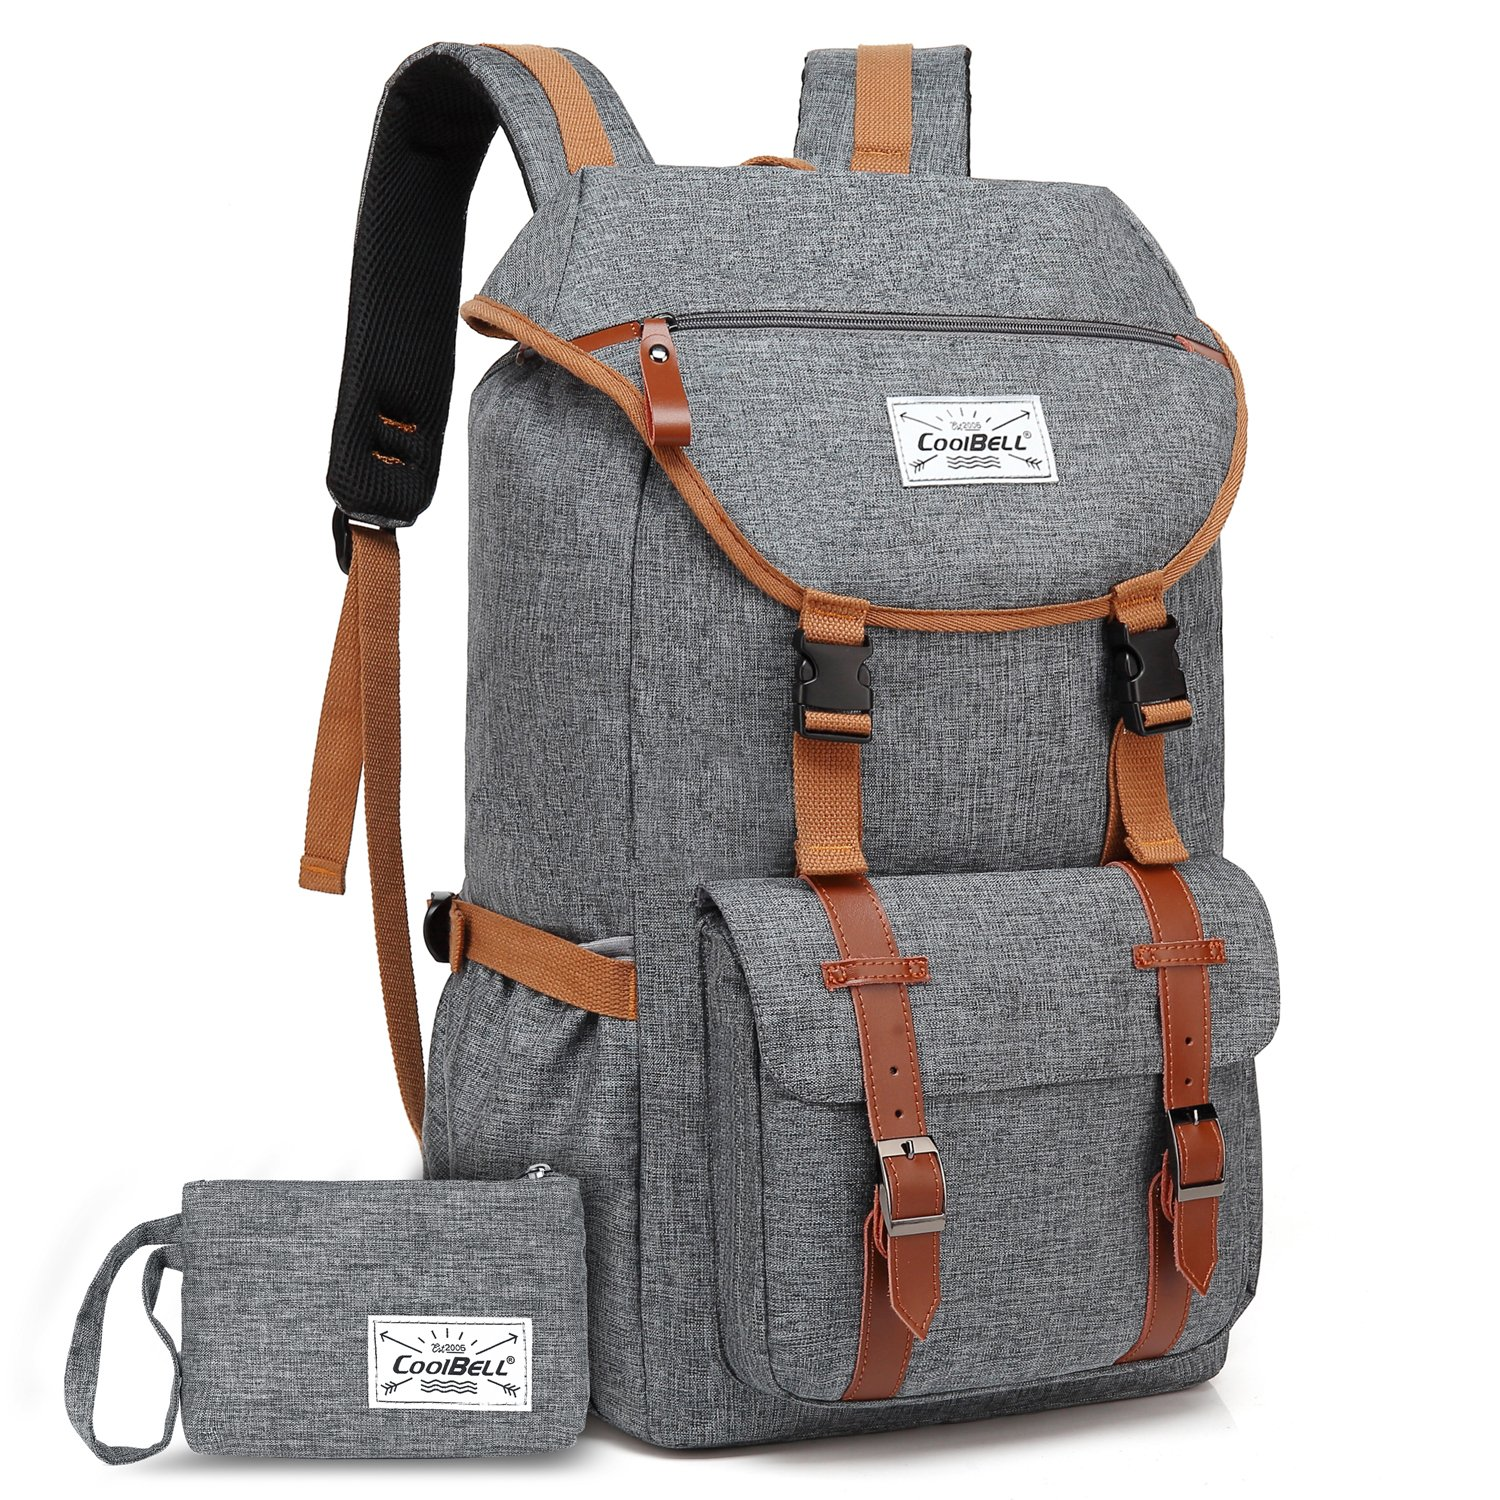 Travel Backpack CoolBELL 17.3 Inches Laptop Backpack Leisure Outdoor Rucksack Hiking Knapsack Daypack Multi-Functional Business Bag for/Men/Women/College (38L, Grey) by CoolBELL